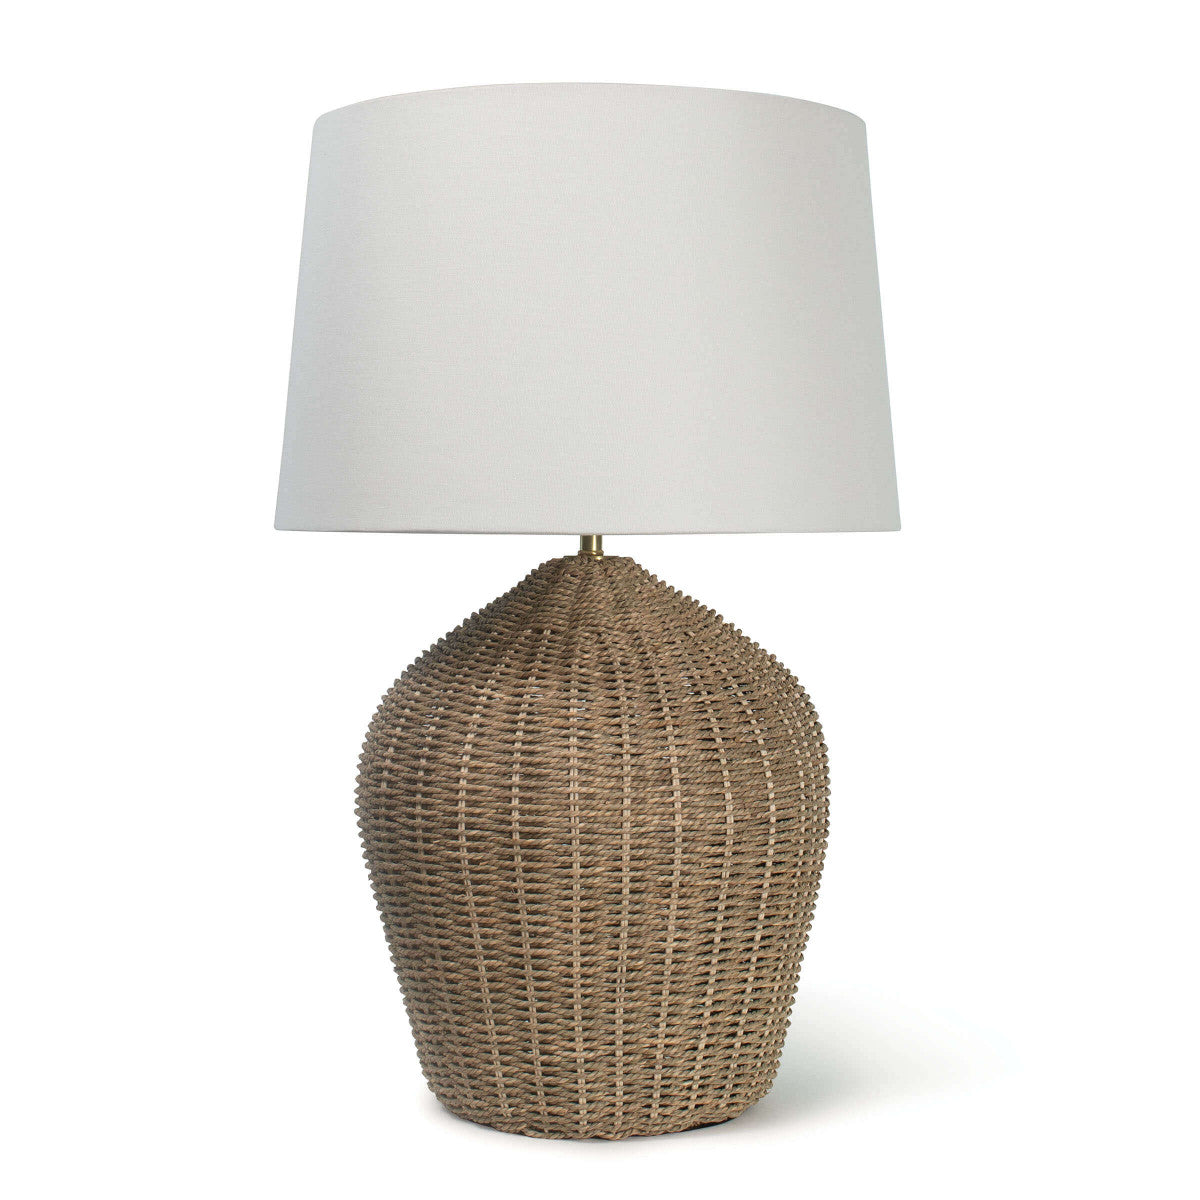 Natural Rattan Table Lamp